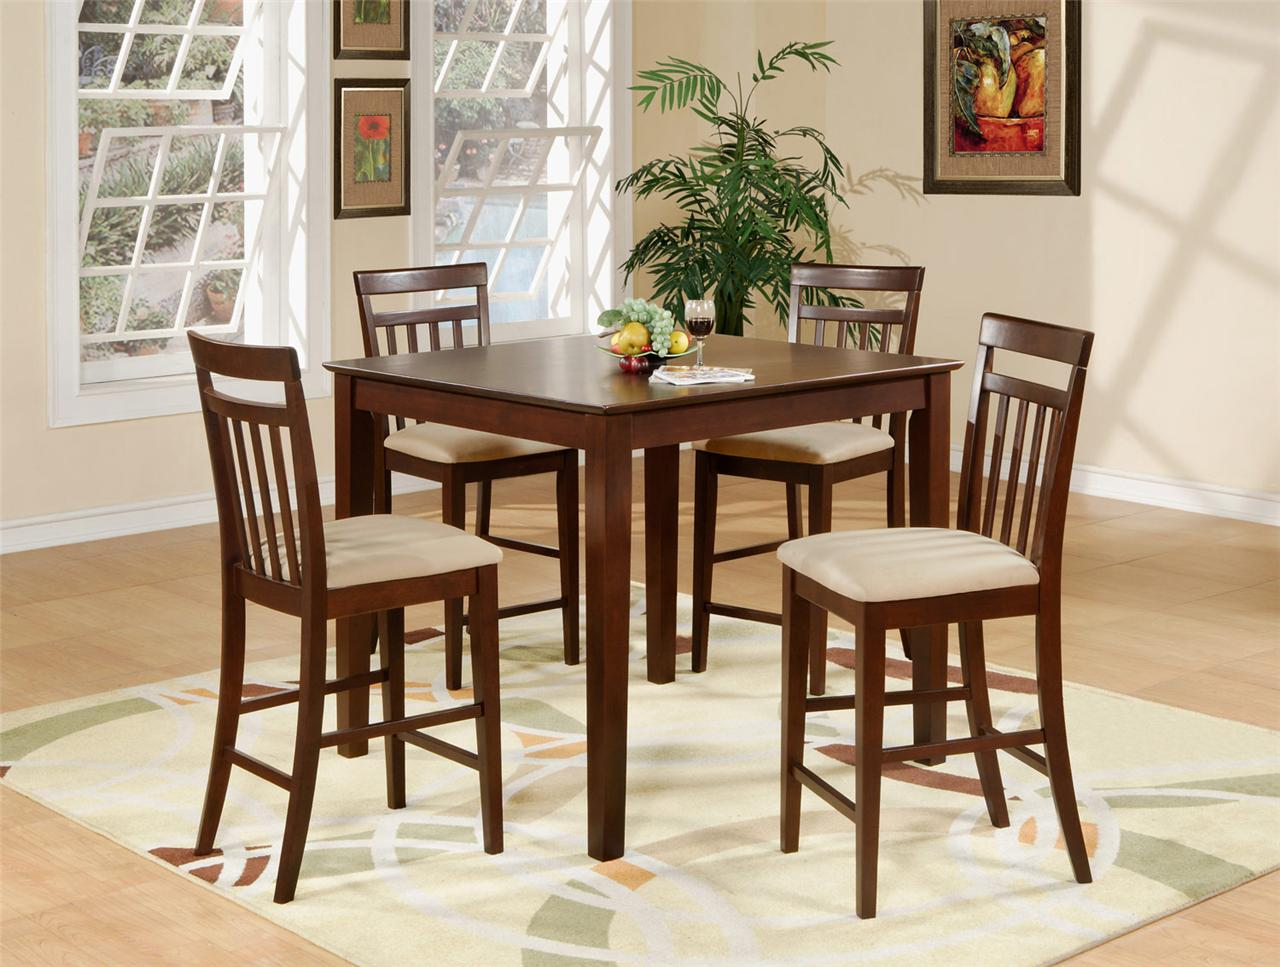 5pc Square Pub Counter Height Dining Table Amp 4 Padded